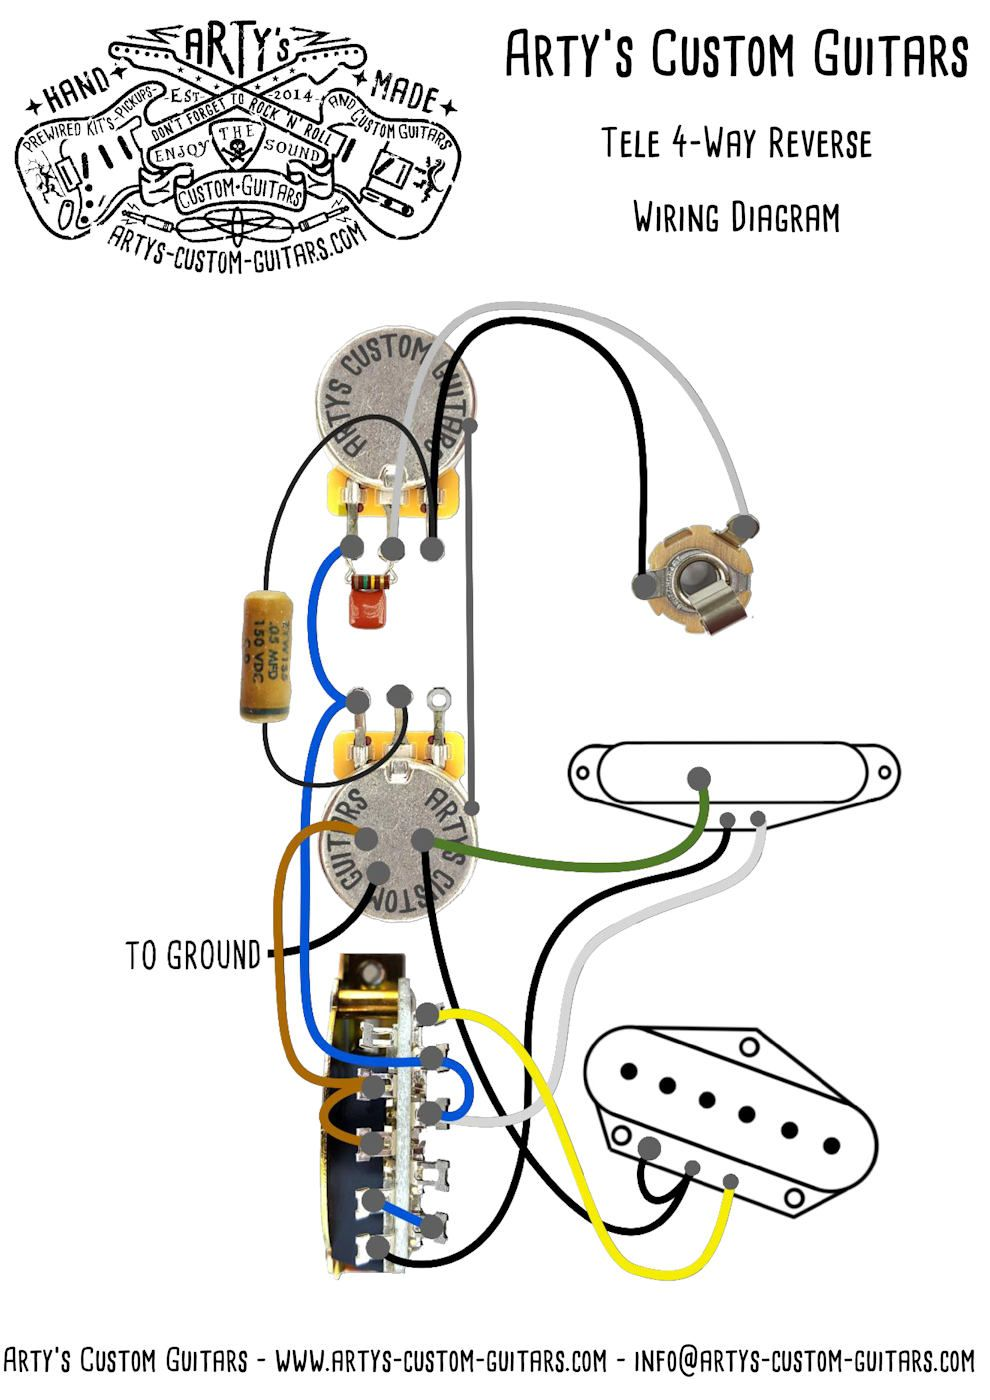 hight resolution of telecaster wiring diagram 3 way reverse www artys custom guitars com